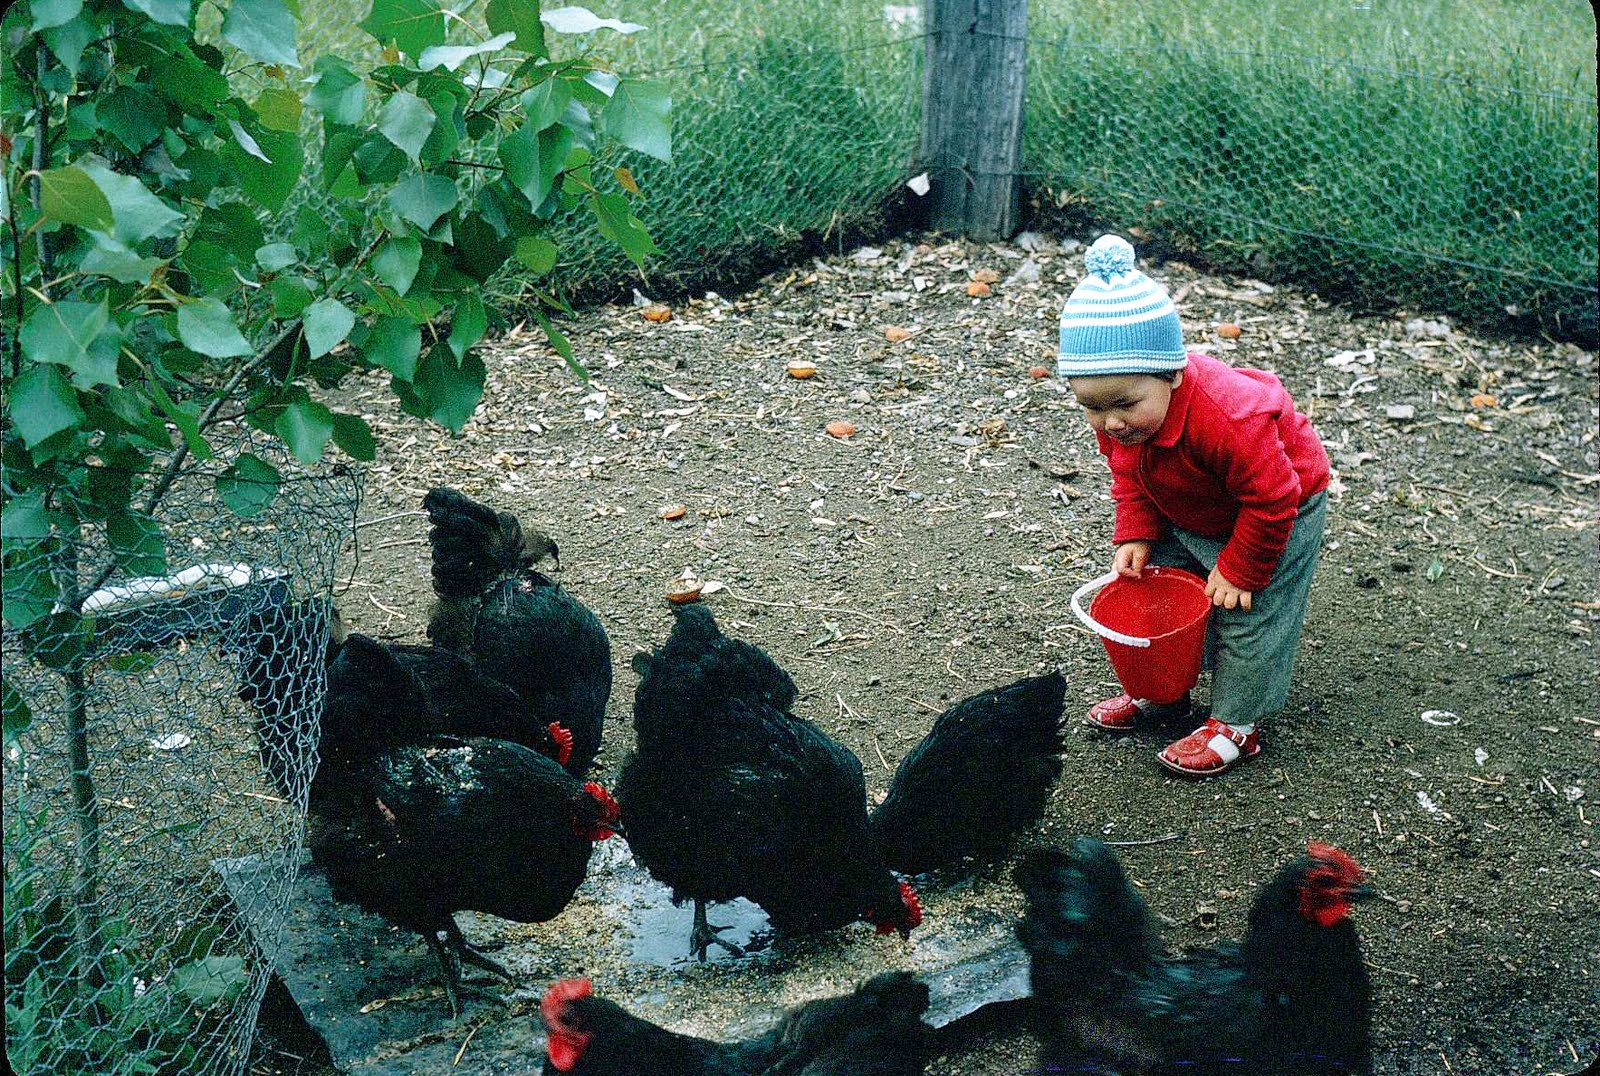 Feeding chickens. Photo: Heather Forsyth